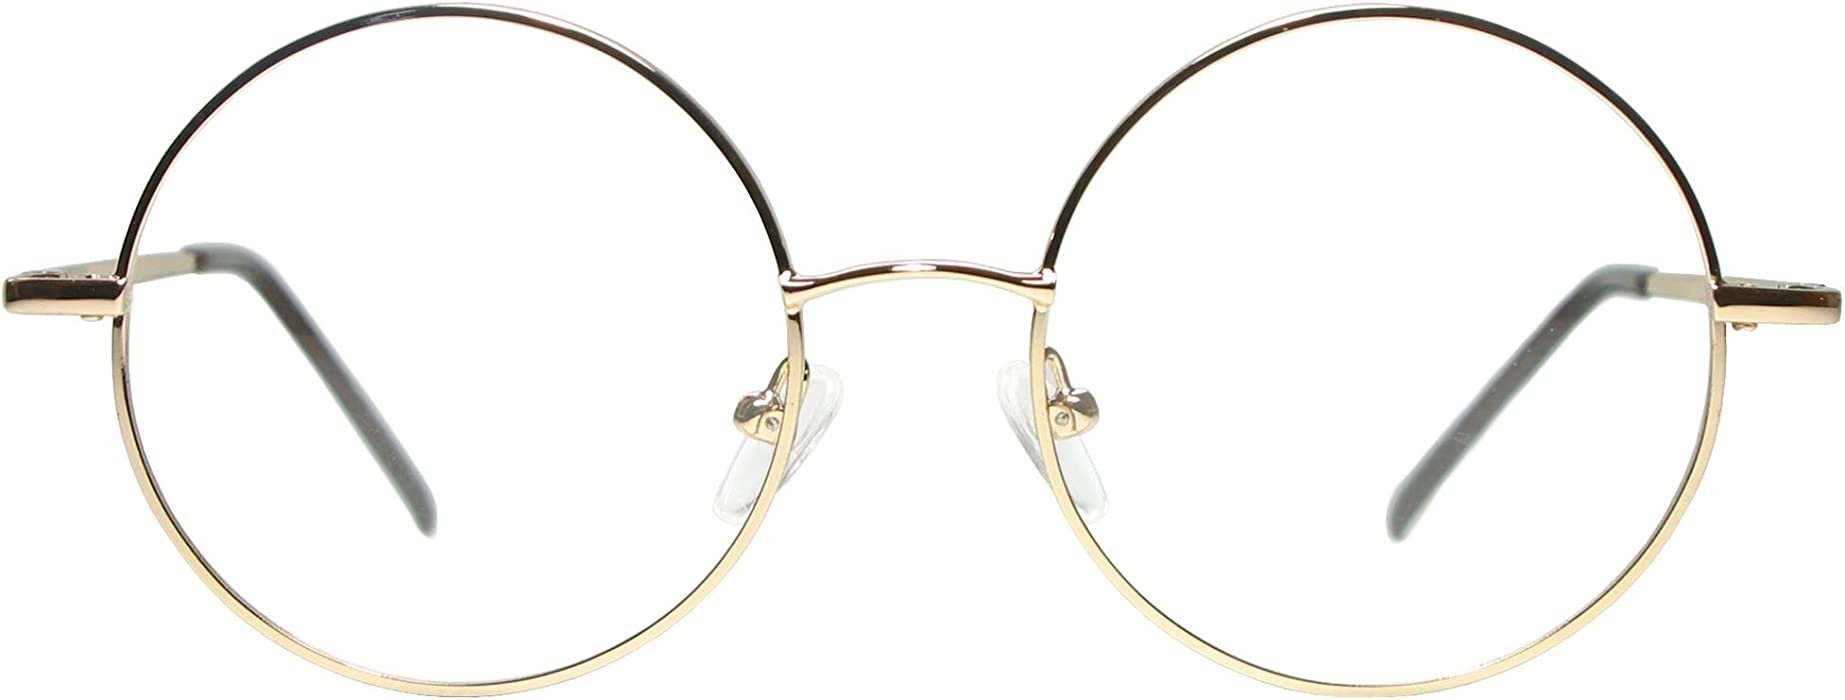 483ff86ee9c Amazon.com  Full Rim Metal Round Eyeglasses Frame (Large Size) - Gold   Clothing